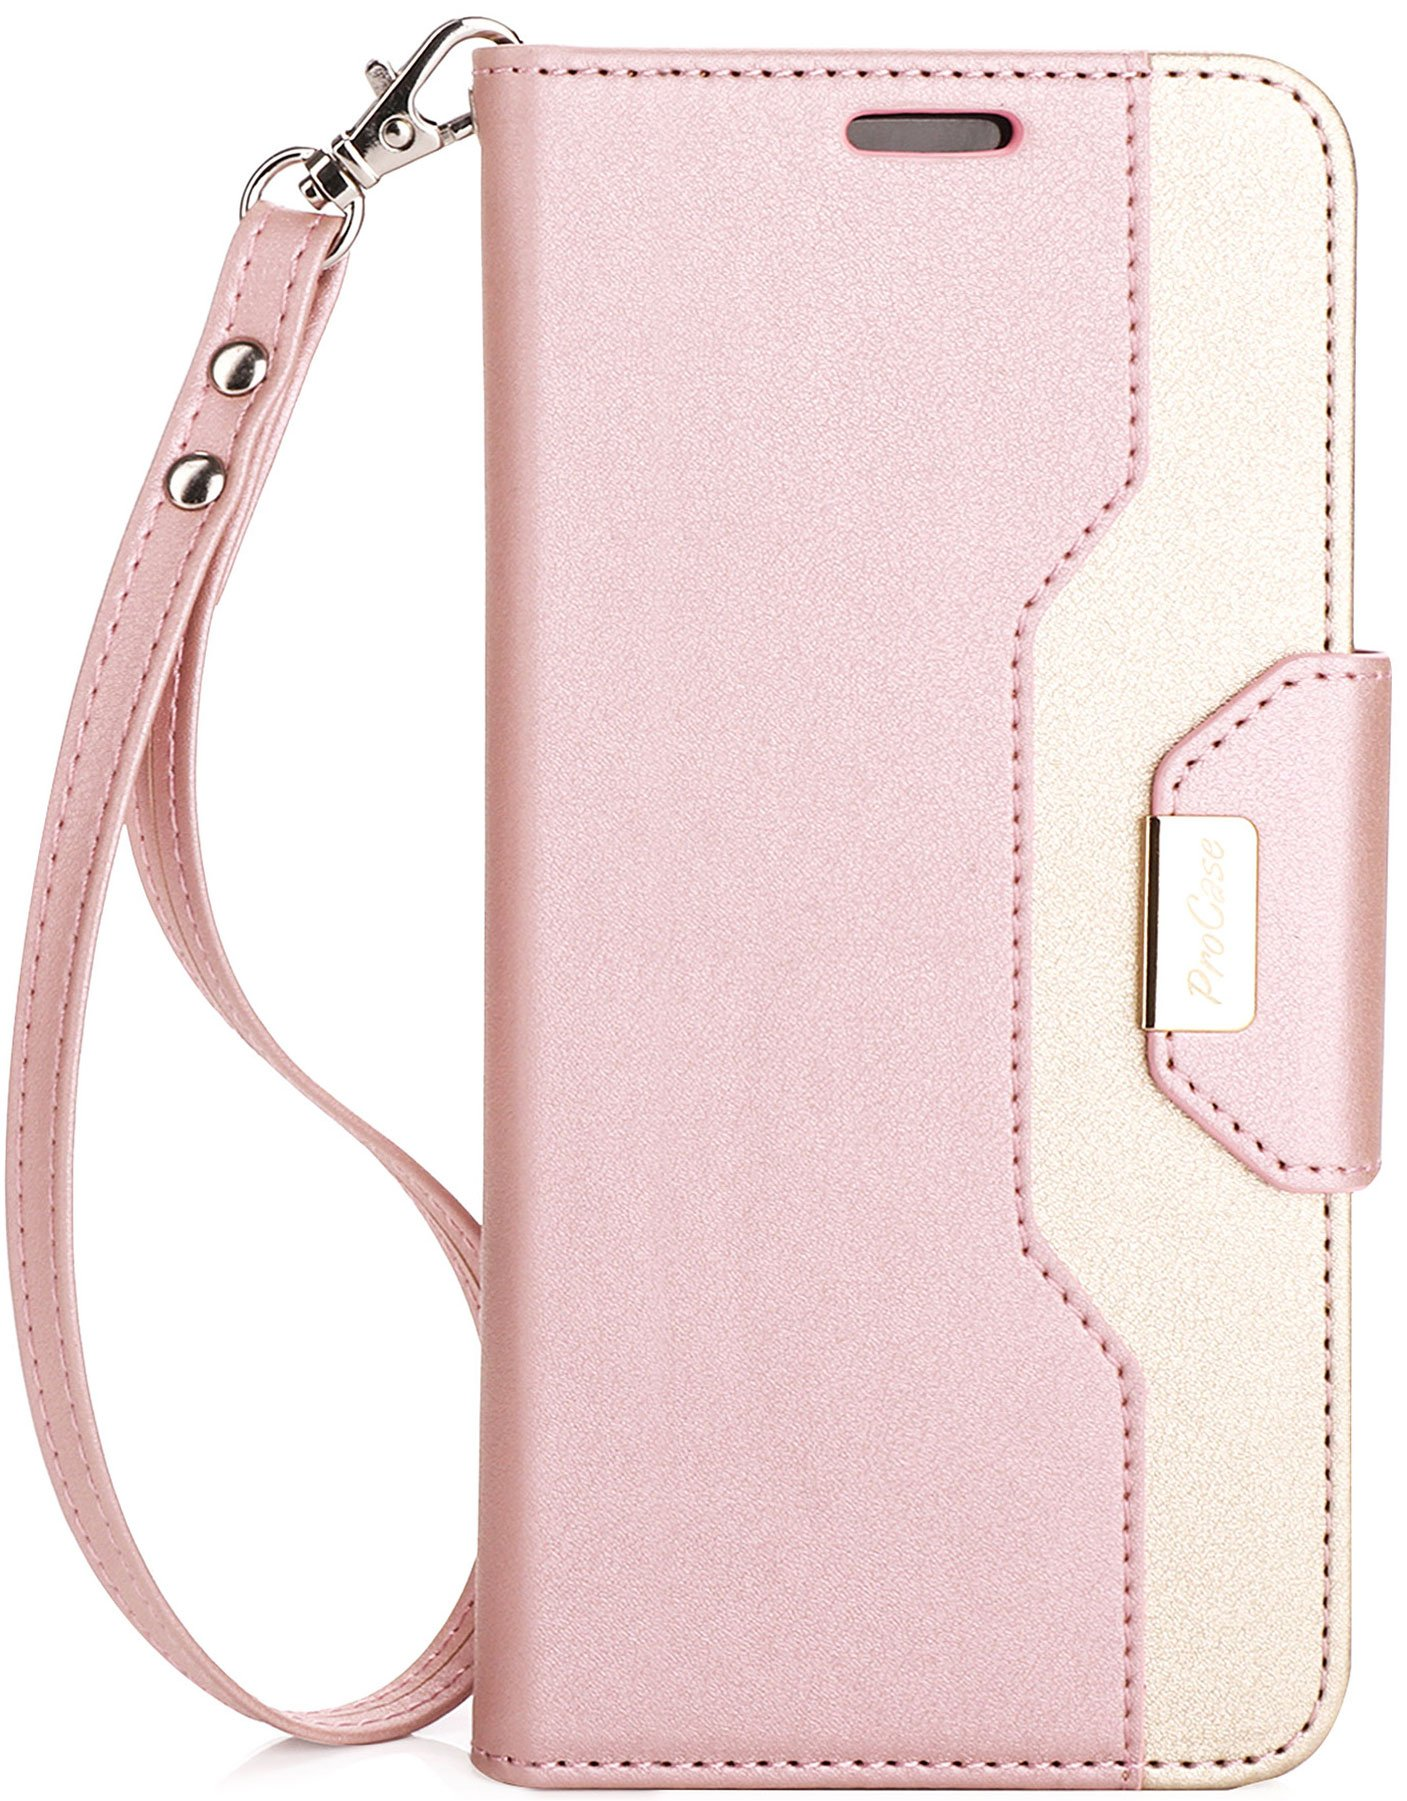 ProCase Galaxy S8 Plus Wallet Case, Flip Kickstand Case with Card Slots Mirror Wristlet, Folding Stand Protective Cover for Samsung Galaxy S8+ 2017 -Pink